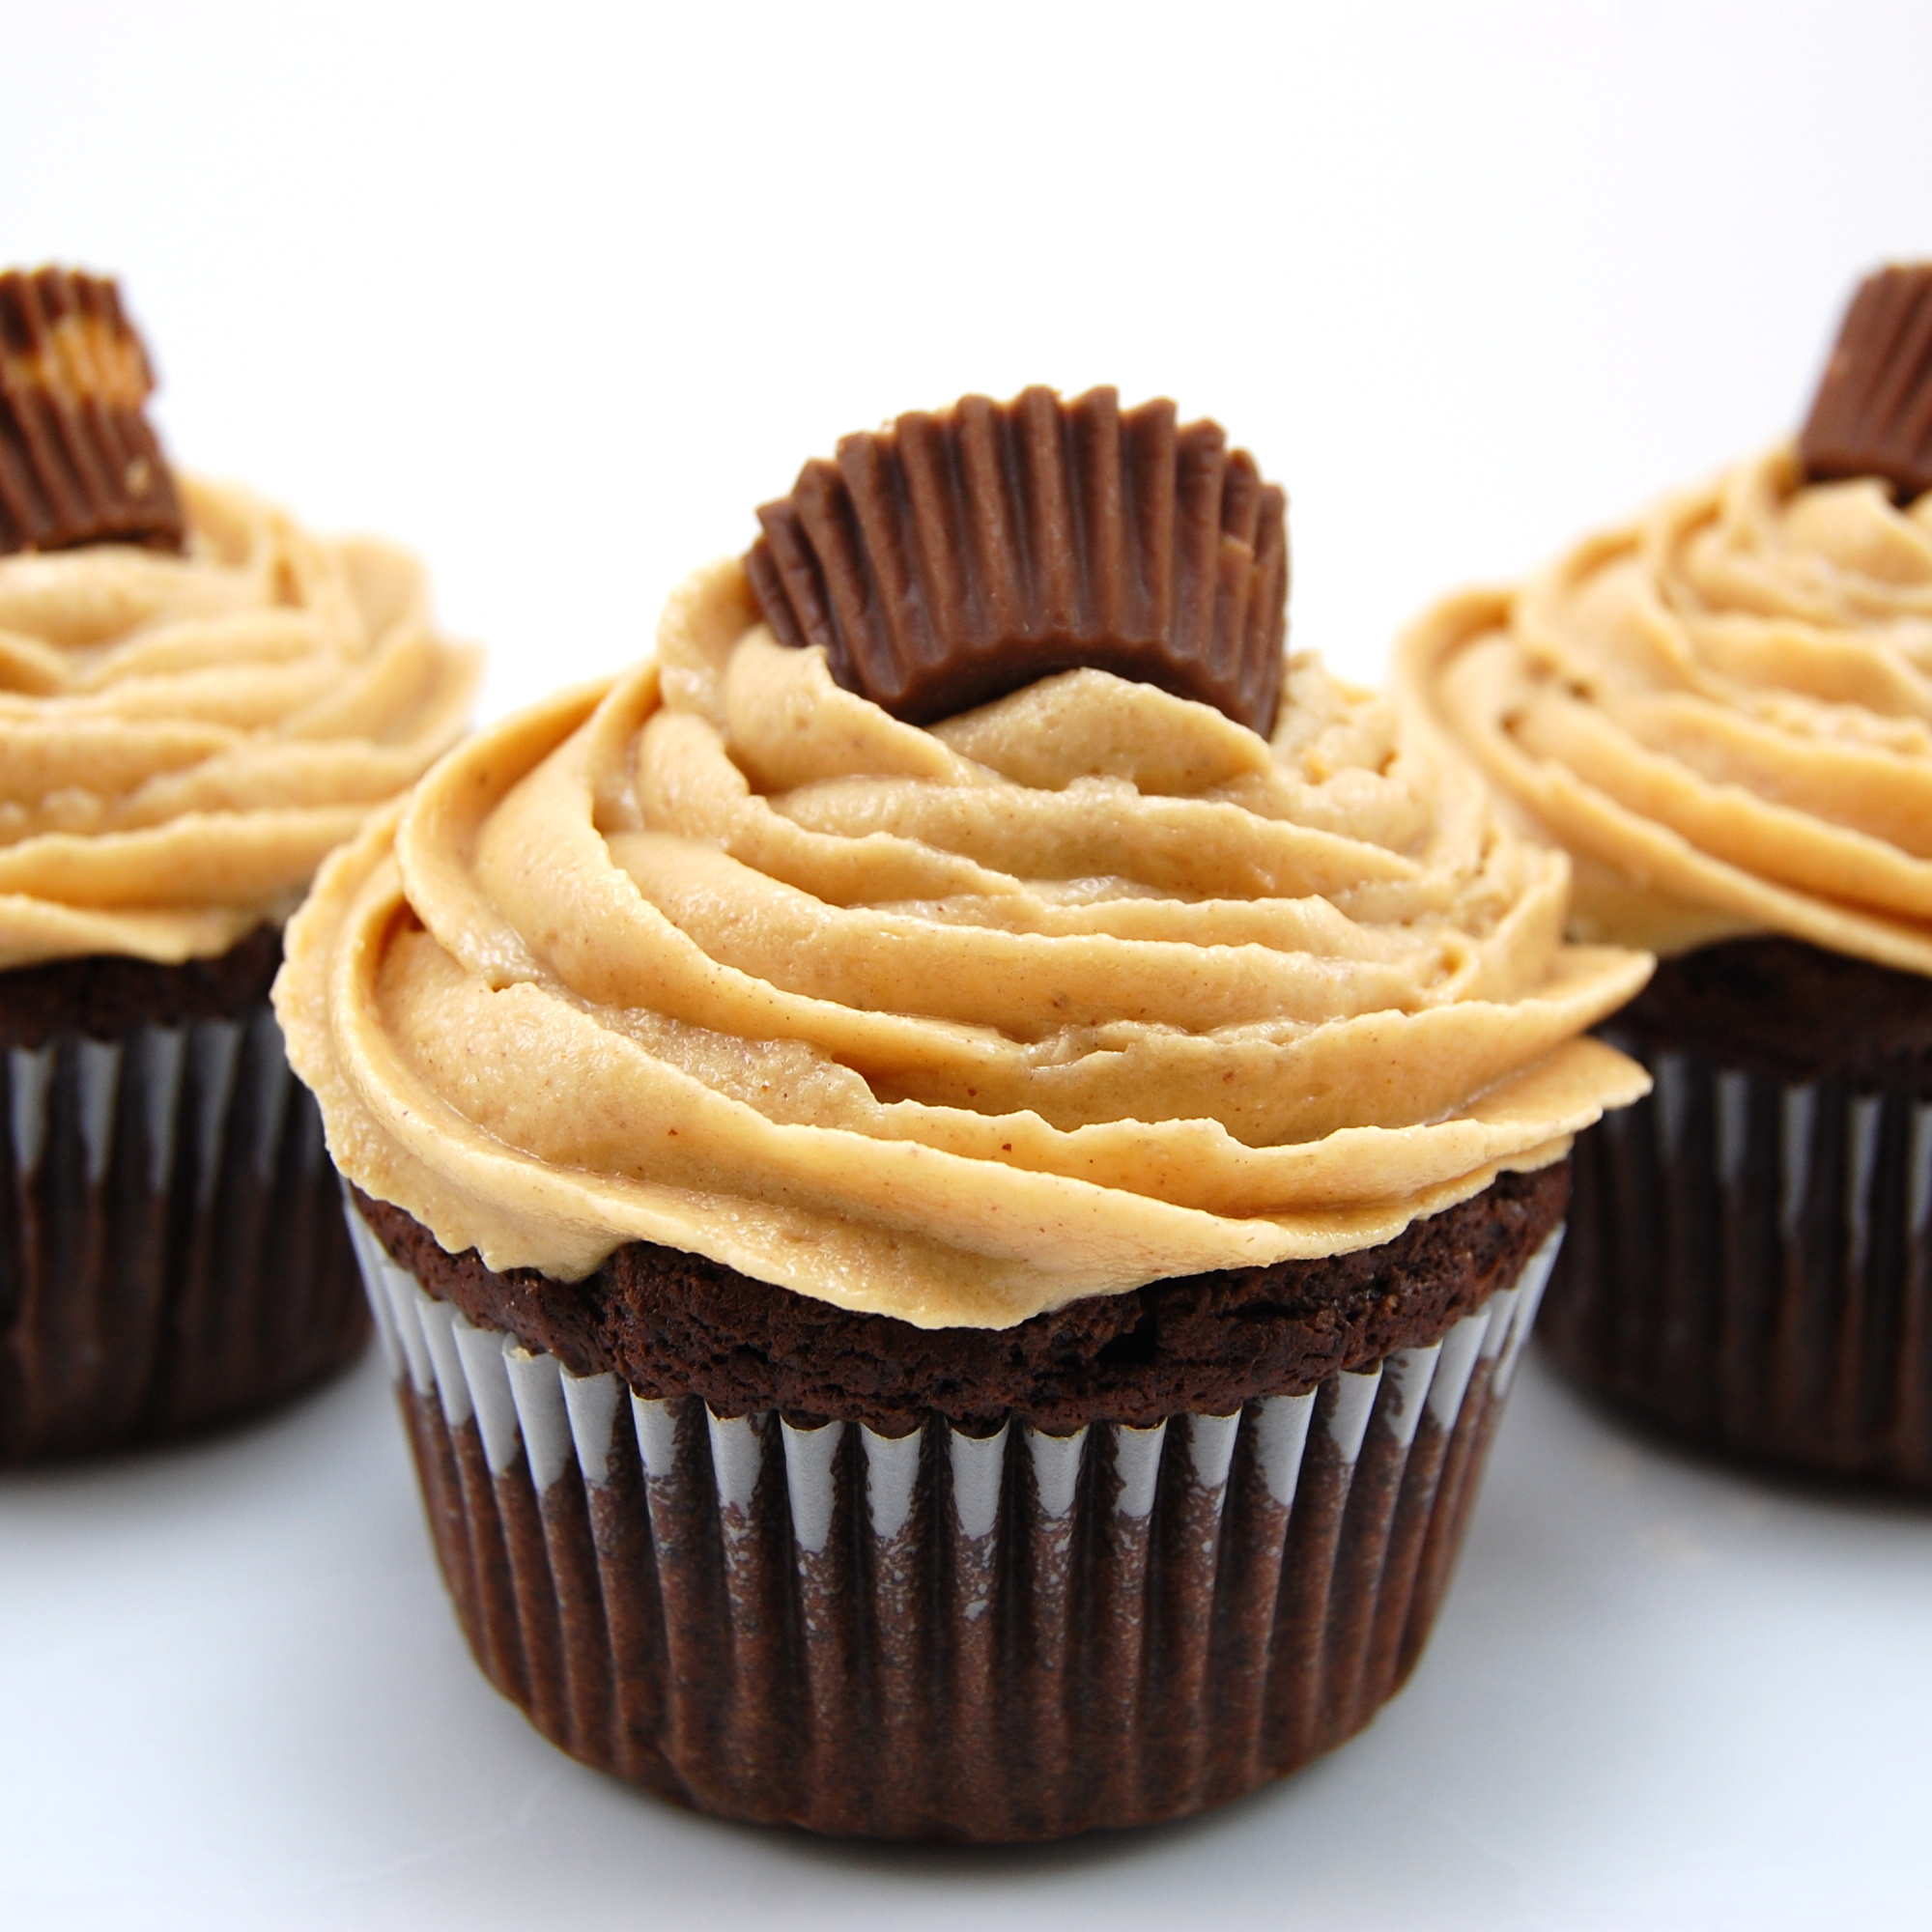 Chocolate Peanut Butter Cup Cupcakes with Peanut Butter ...